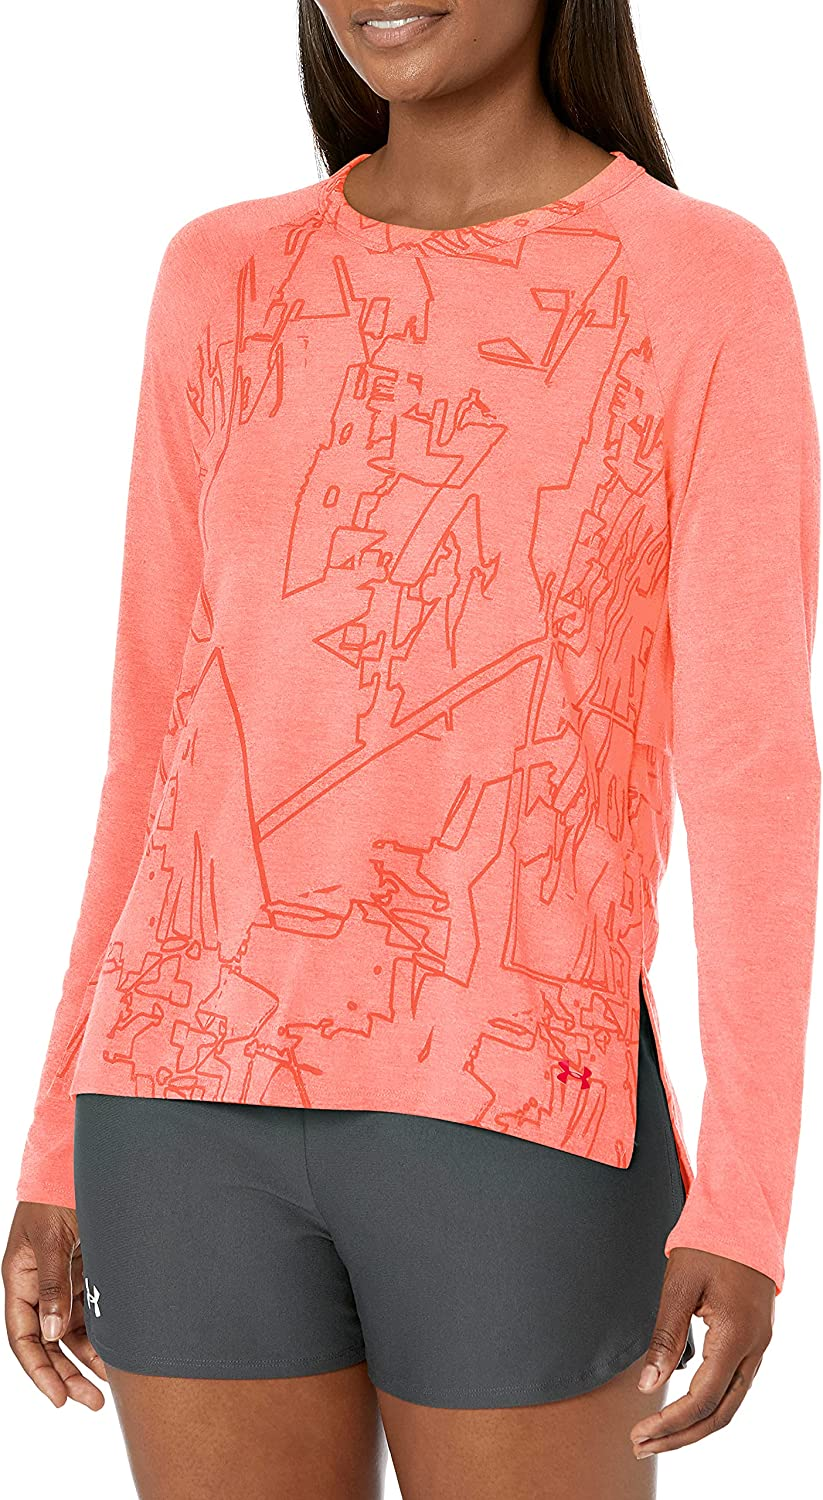 Online limited Al sold out. product Under Armour Women's Burnout Unstoppable Longsleeve